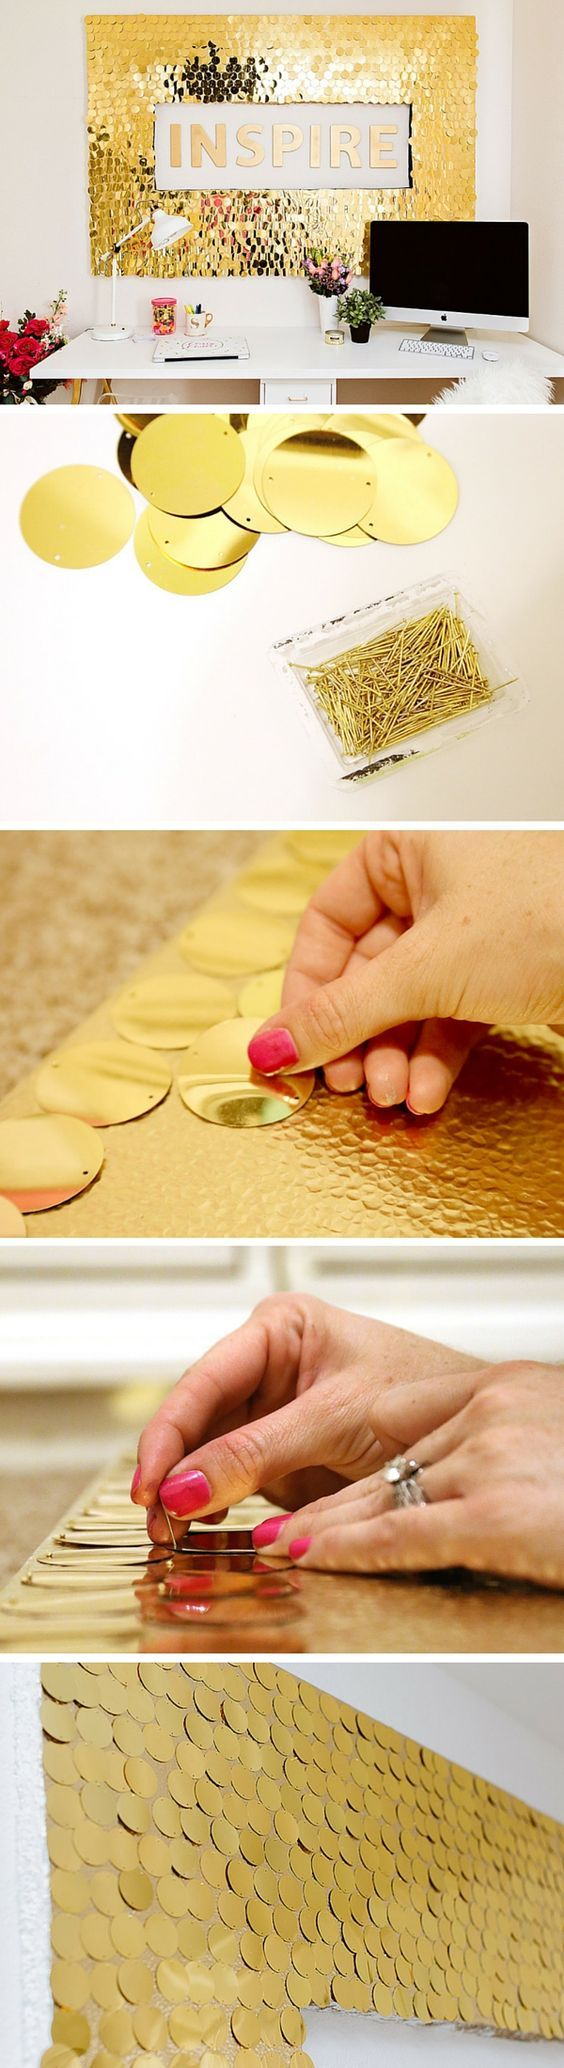 15 DIY Projects to Make Your Home Look Classy   Wall art crafts ...